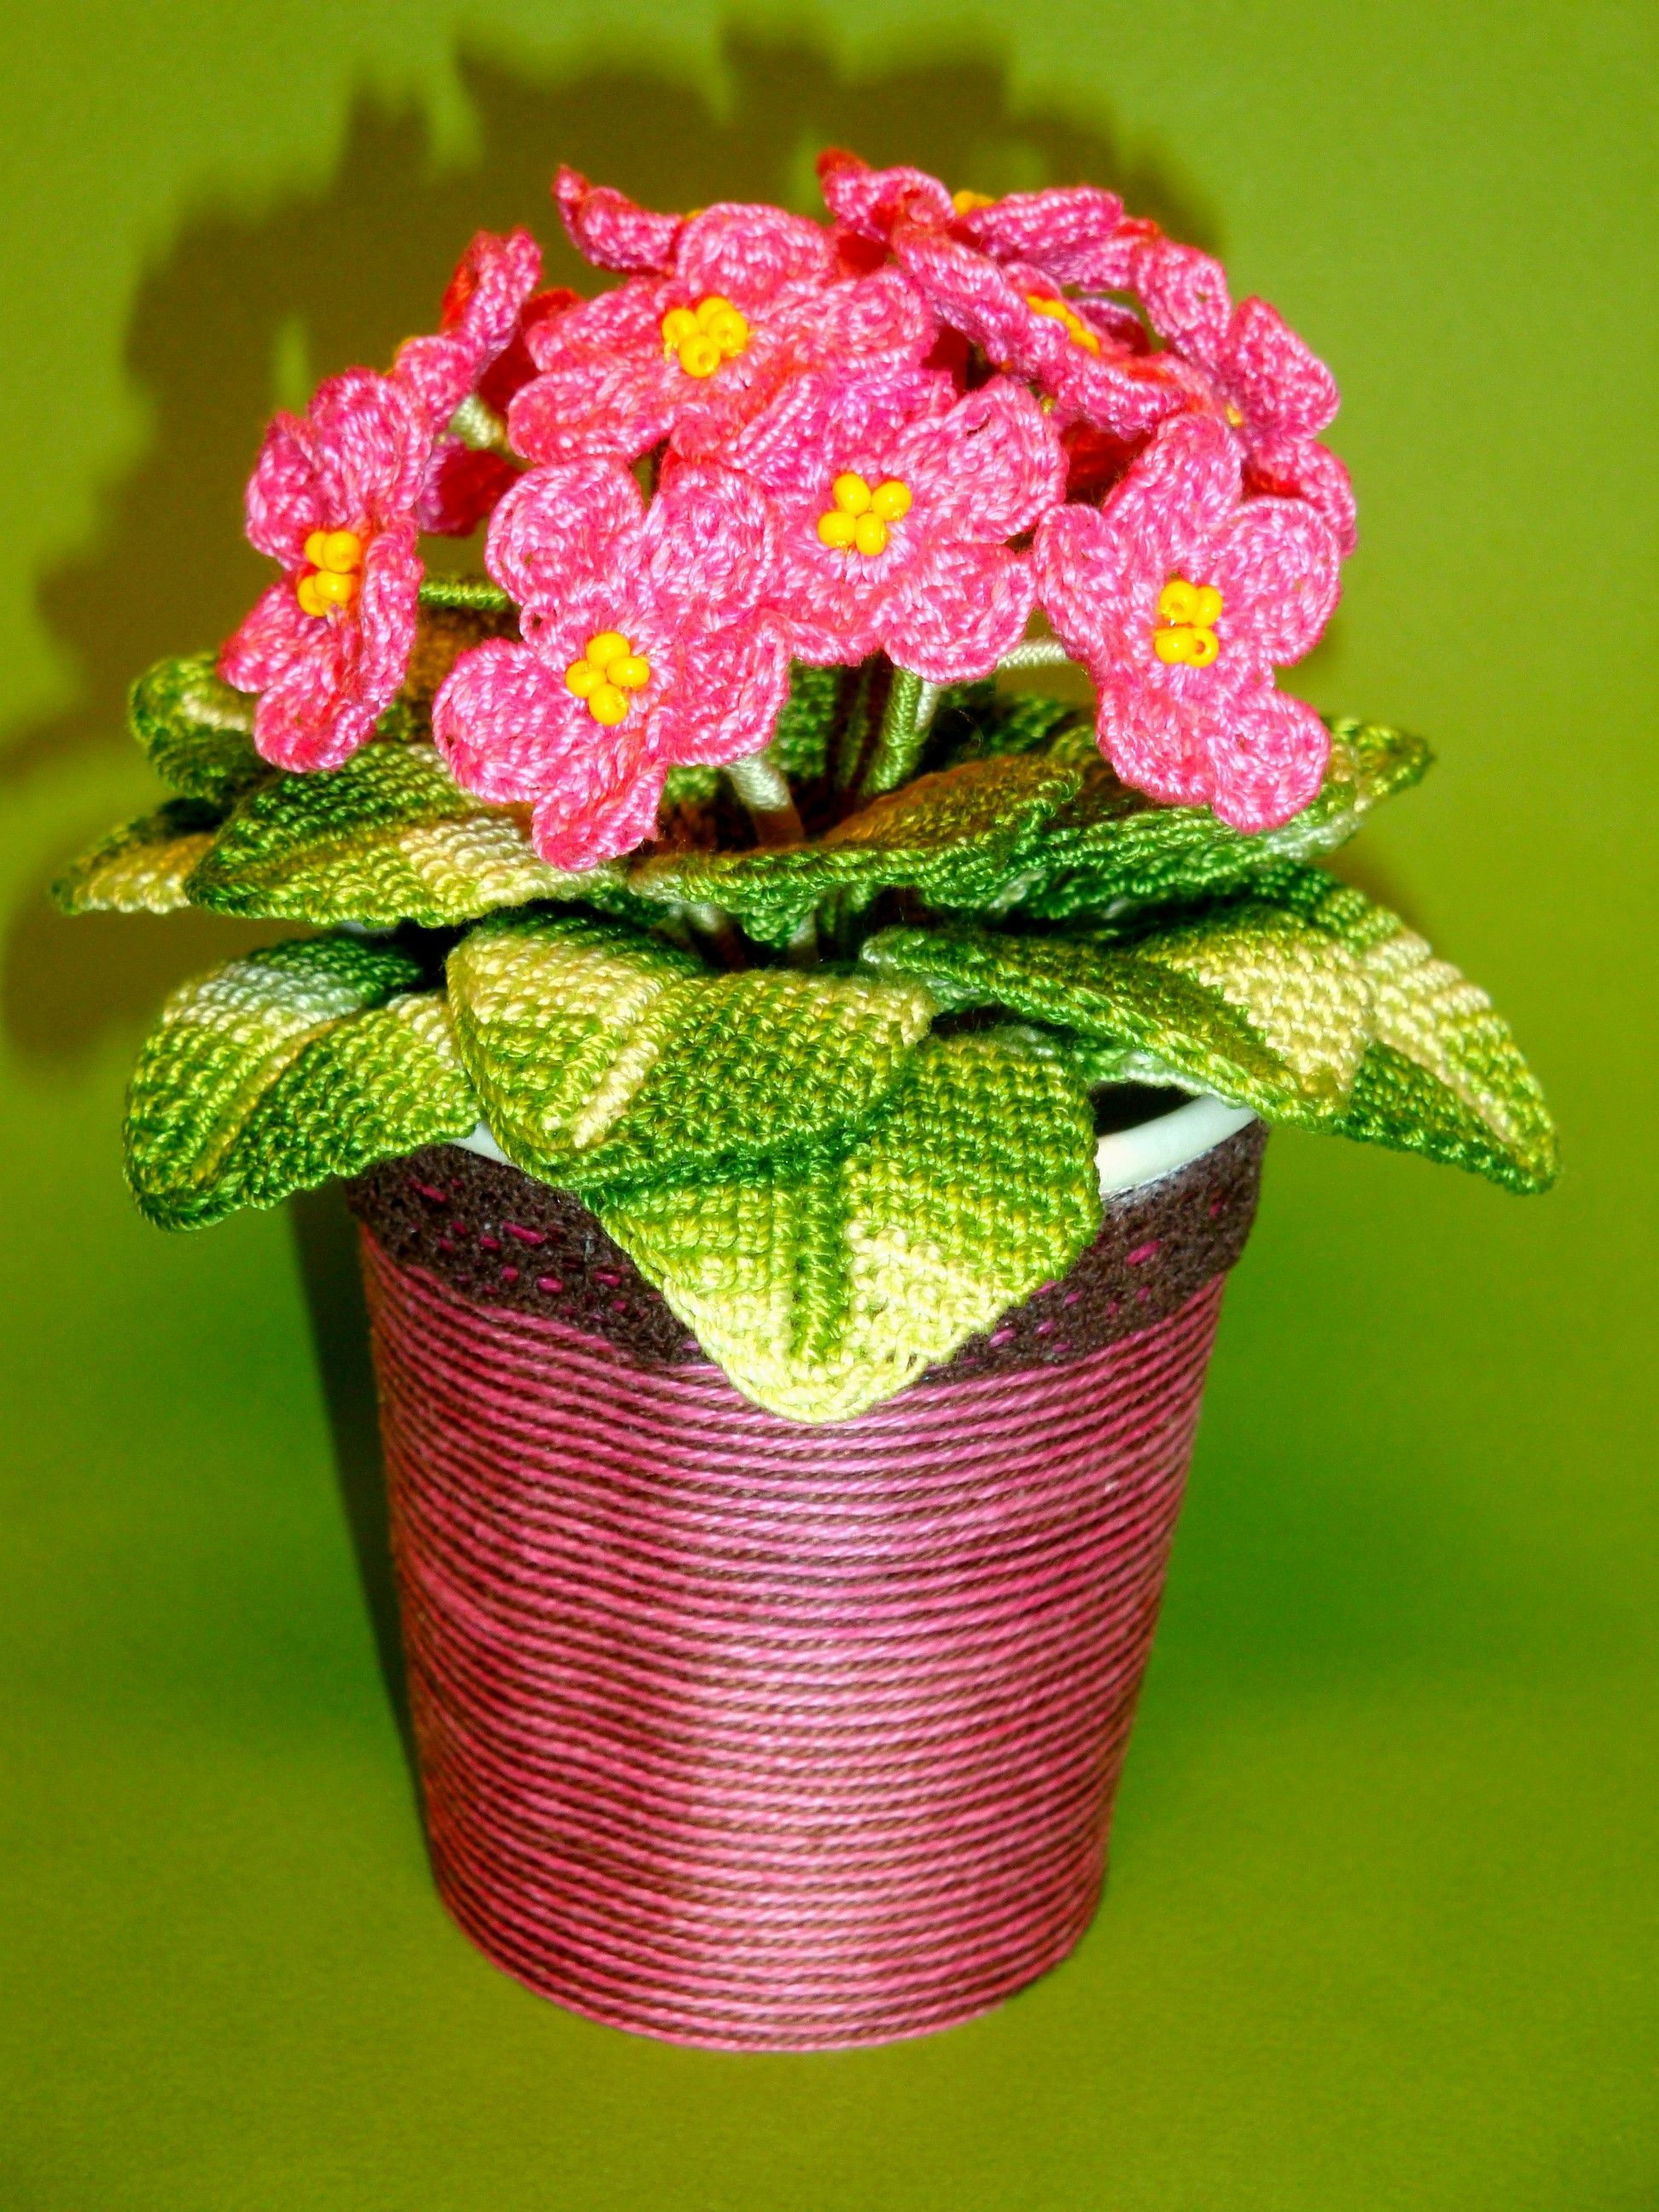 Pin by June McInnes on Flowers and plants  c35afcf1b2d57